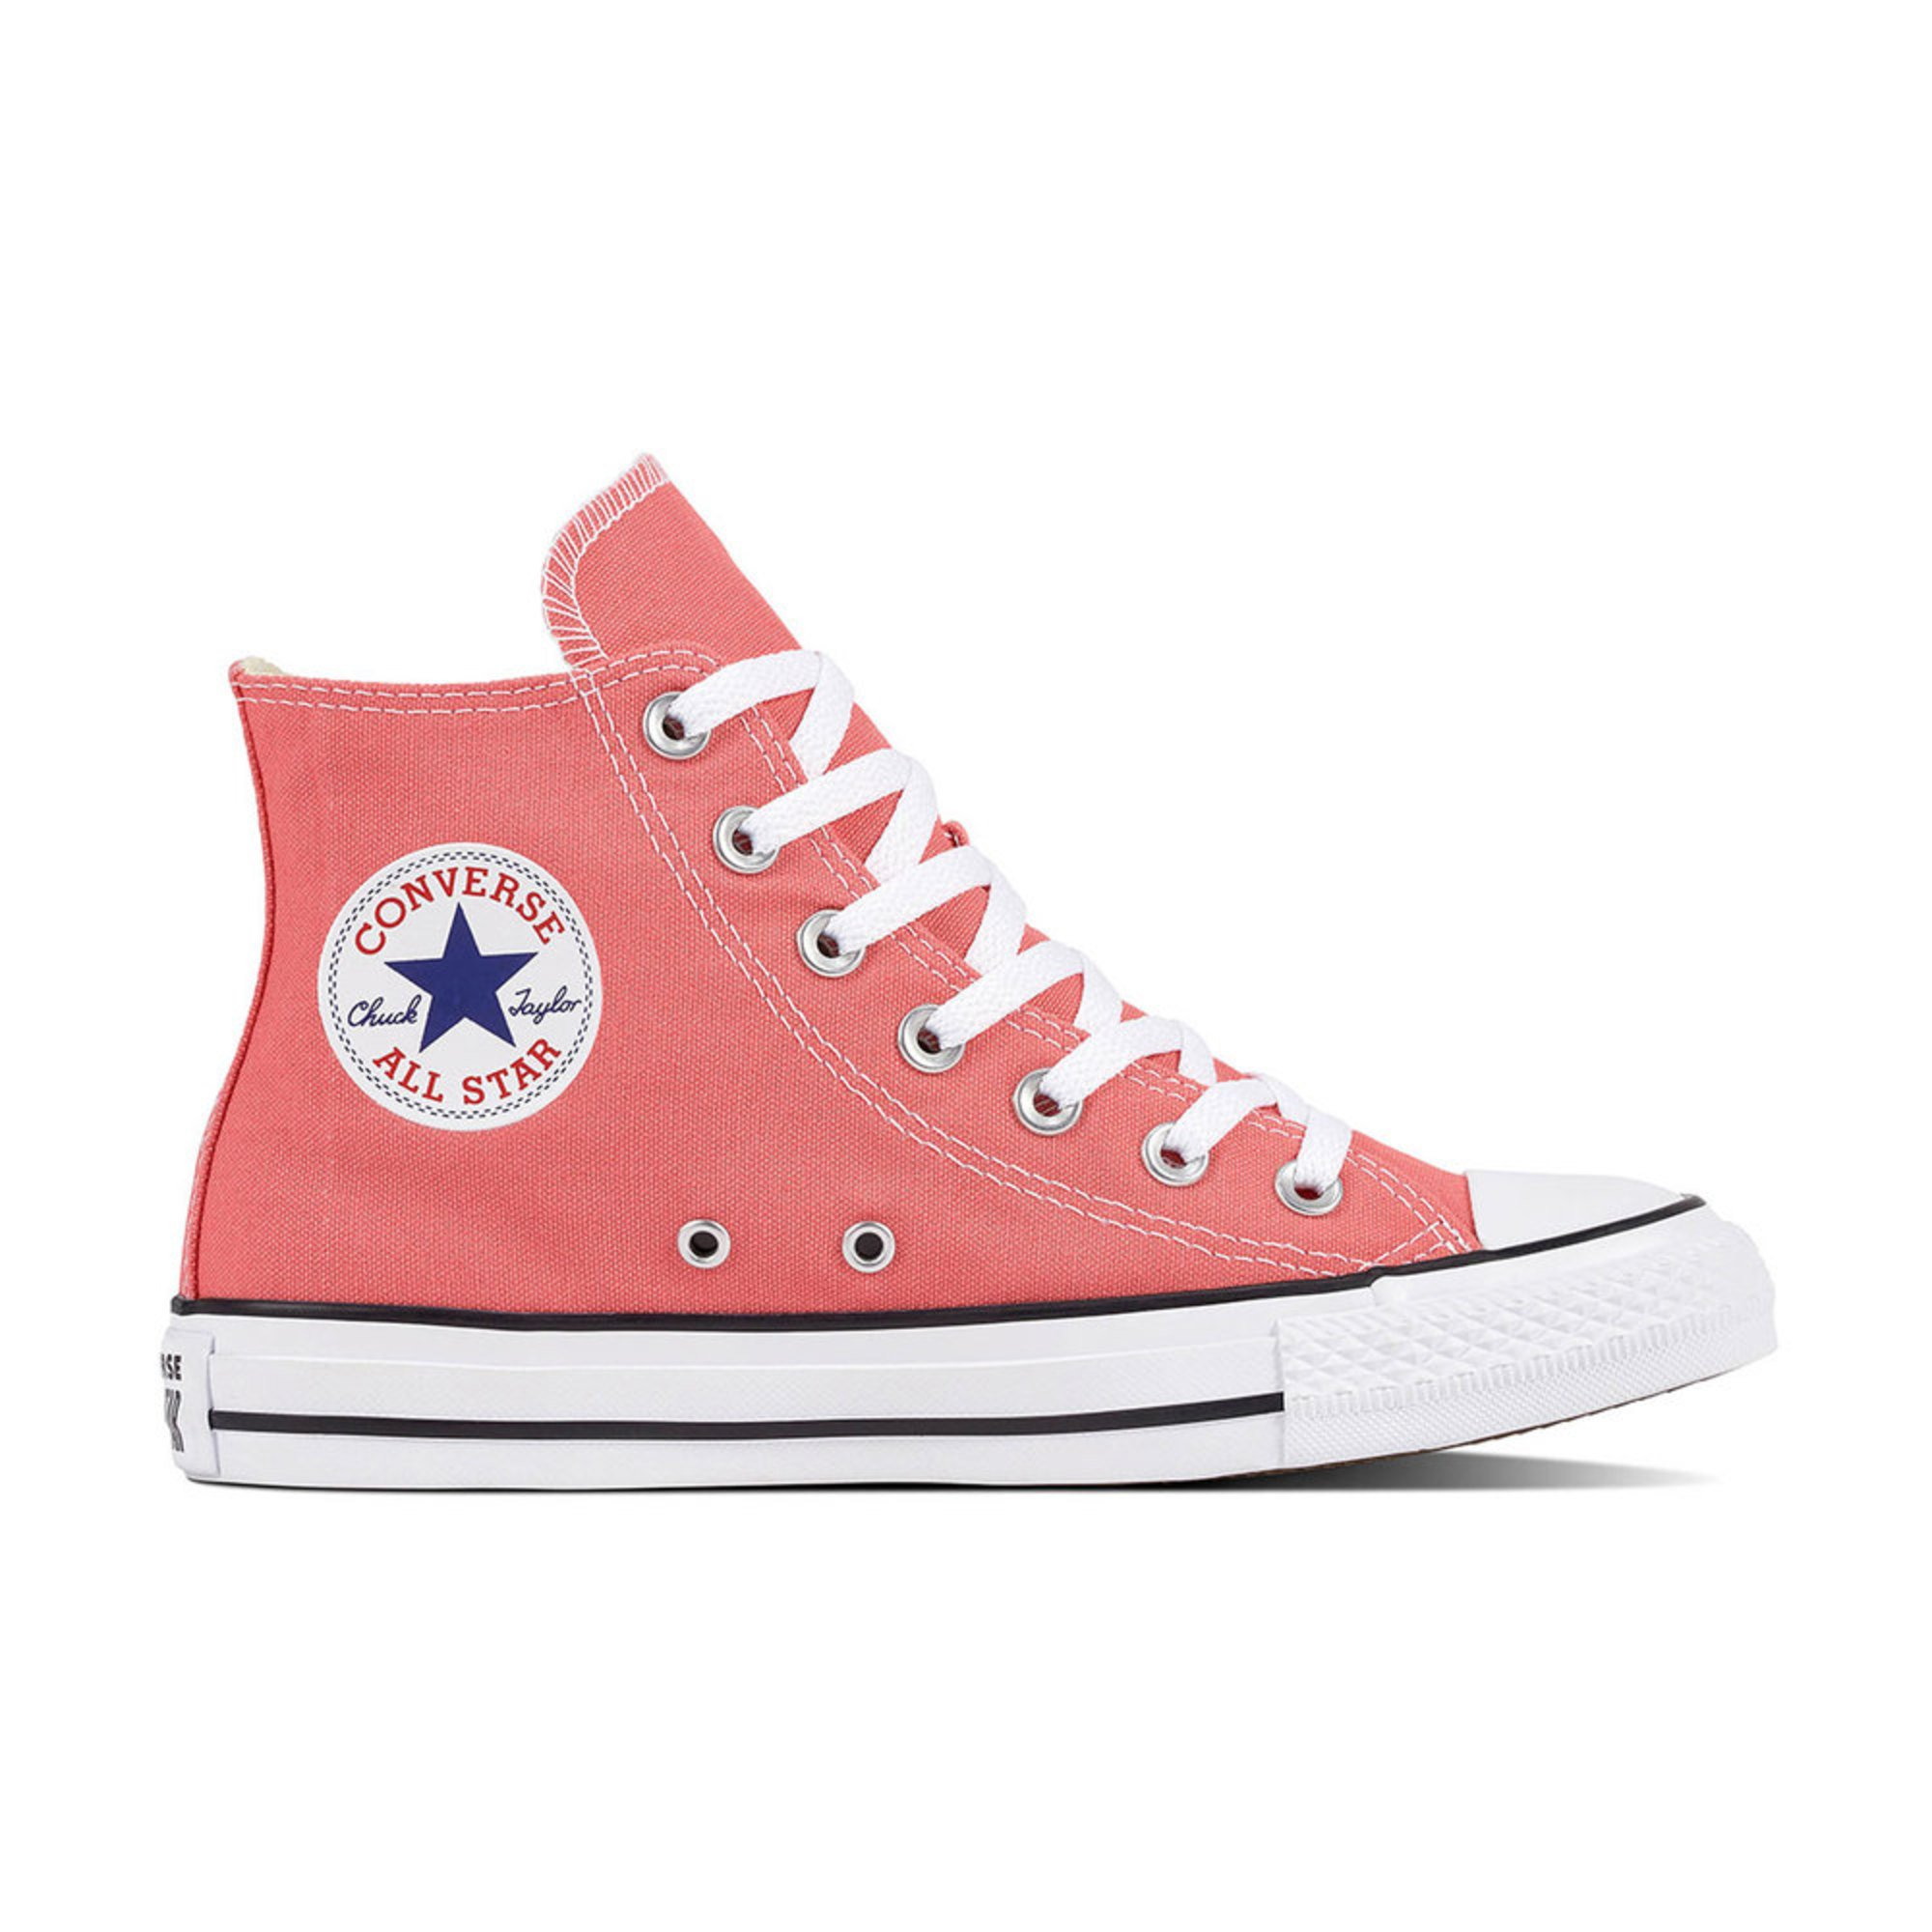 a15d38459be7 Converse. Converse Women s Chuck Taylor All Star Hi Top Sneaker